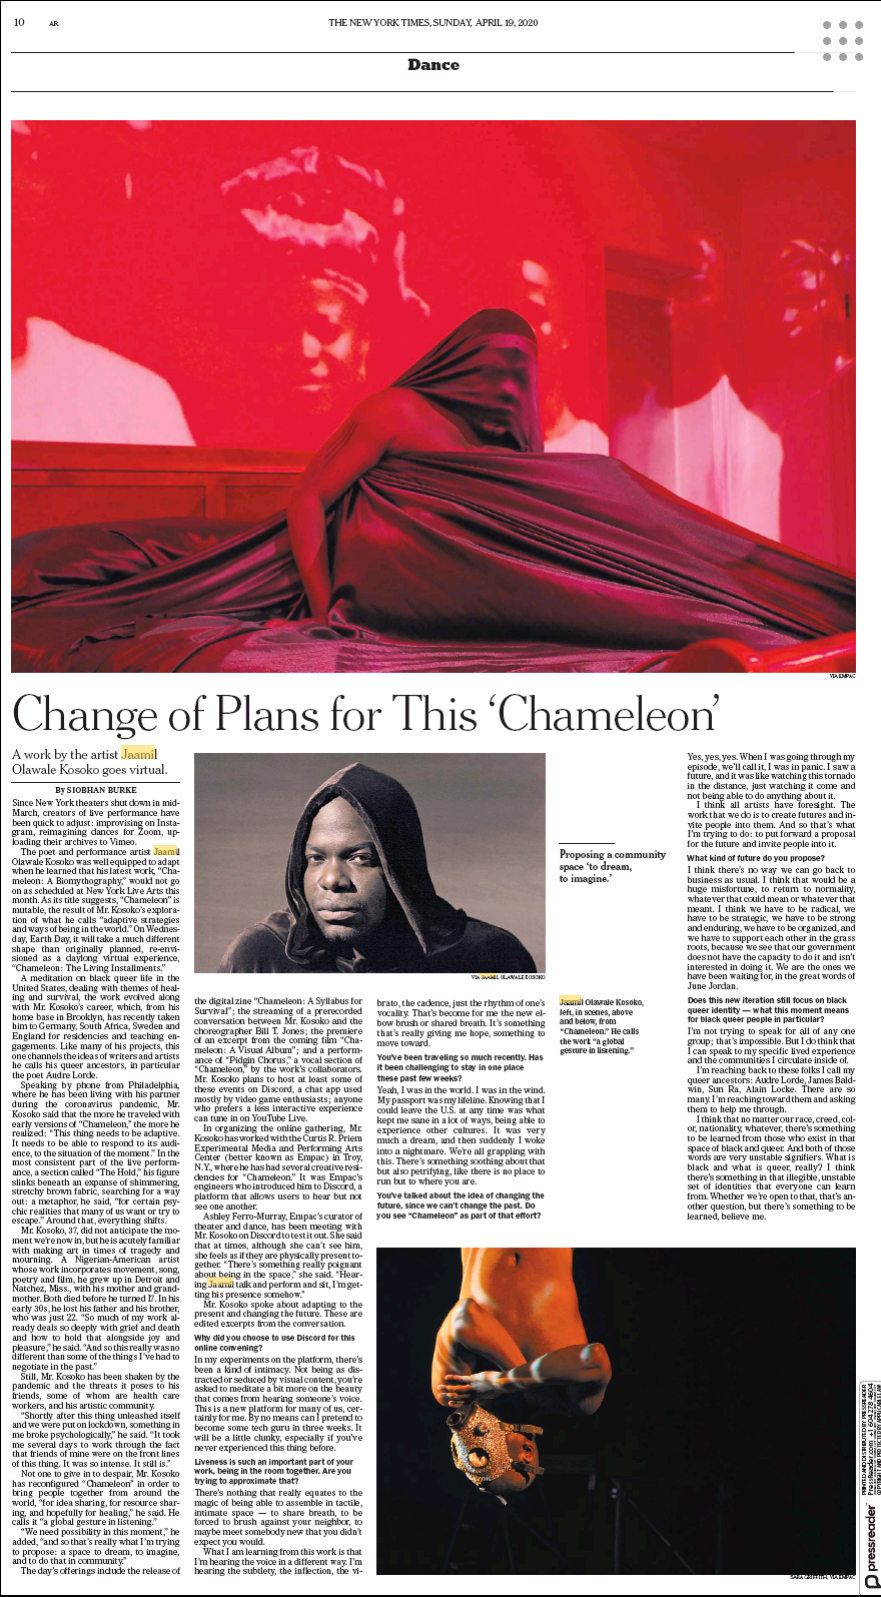 a screenshot of the article in the NYTimes Replica Edition